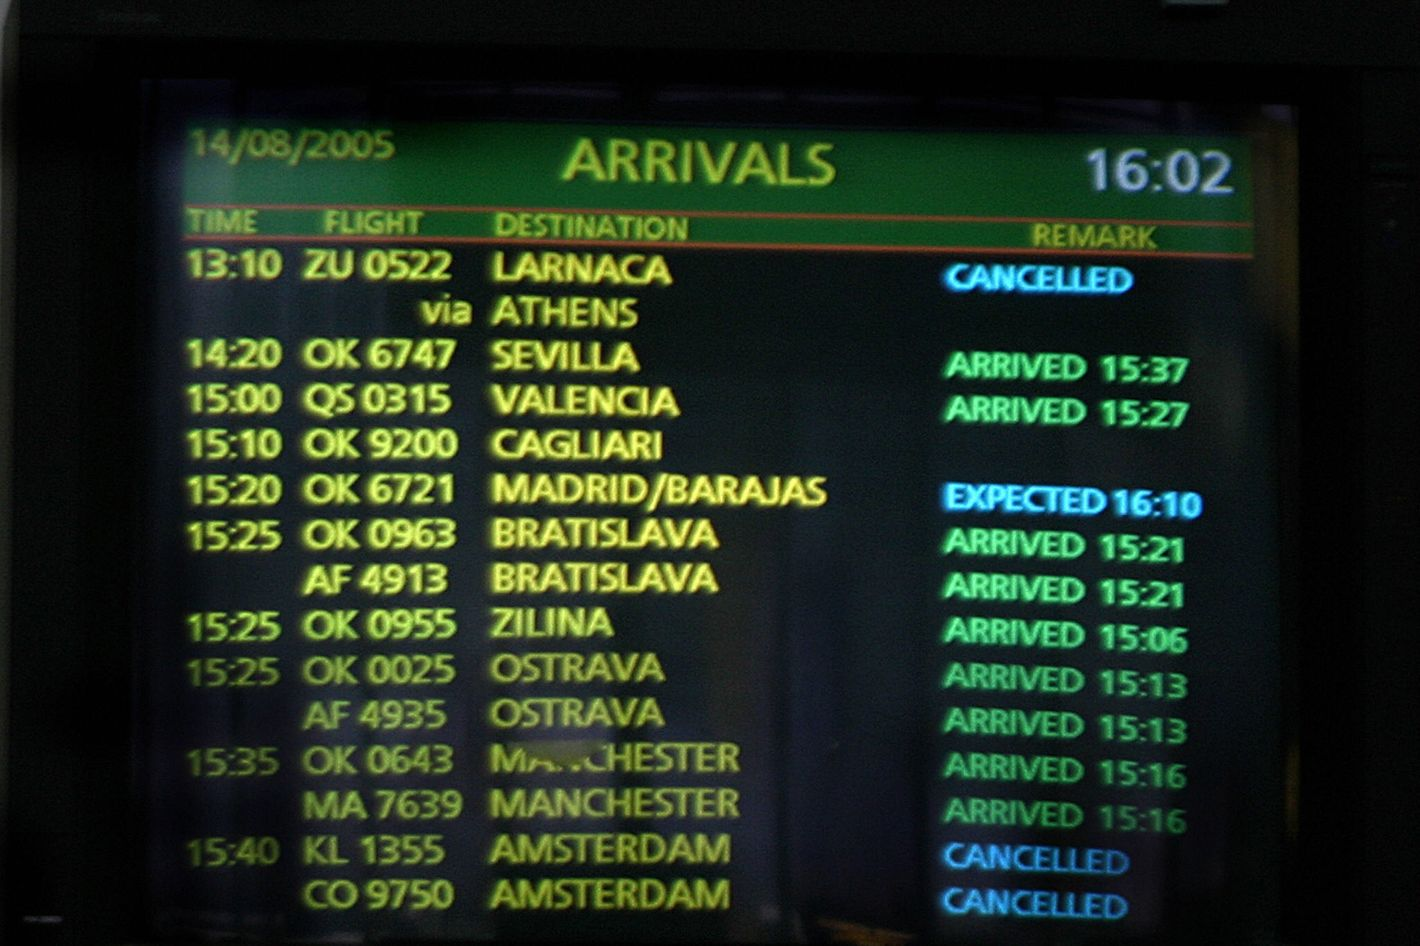 "Prague, CZECH REPUBLIC:  A picture taken 14 August 2005 at Prague airport shows a screen announcing that Helios flight ZU 0522 from Larnaca to Prague via Athens was cancelled. A Cypriot official said first indications from the Greek authorities were that the crash of a Cypriot airliner near Athens on Sunday was not the result of a terror attack. ""First indications from the Greek authorities are that this wasn't a terrorist attack,"" presidential spokesman Marios Karoyan told reporters. The Helios Airways plane crashed with 121 people on board including 115 passengers and six crew. AFP PHOTO / MICHAL CIZEK  (Photo credit should read MICHAL CIZEK/AFP/Getty Images)"